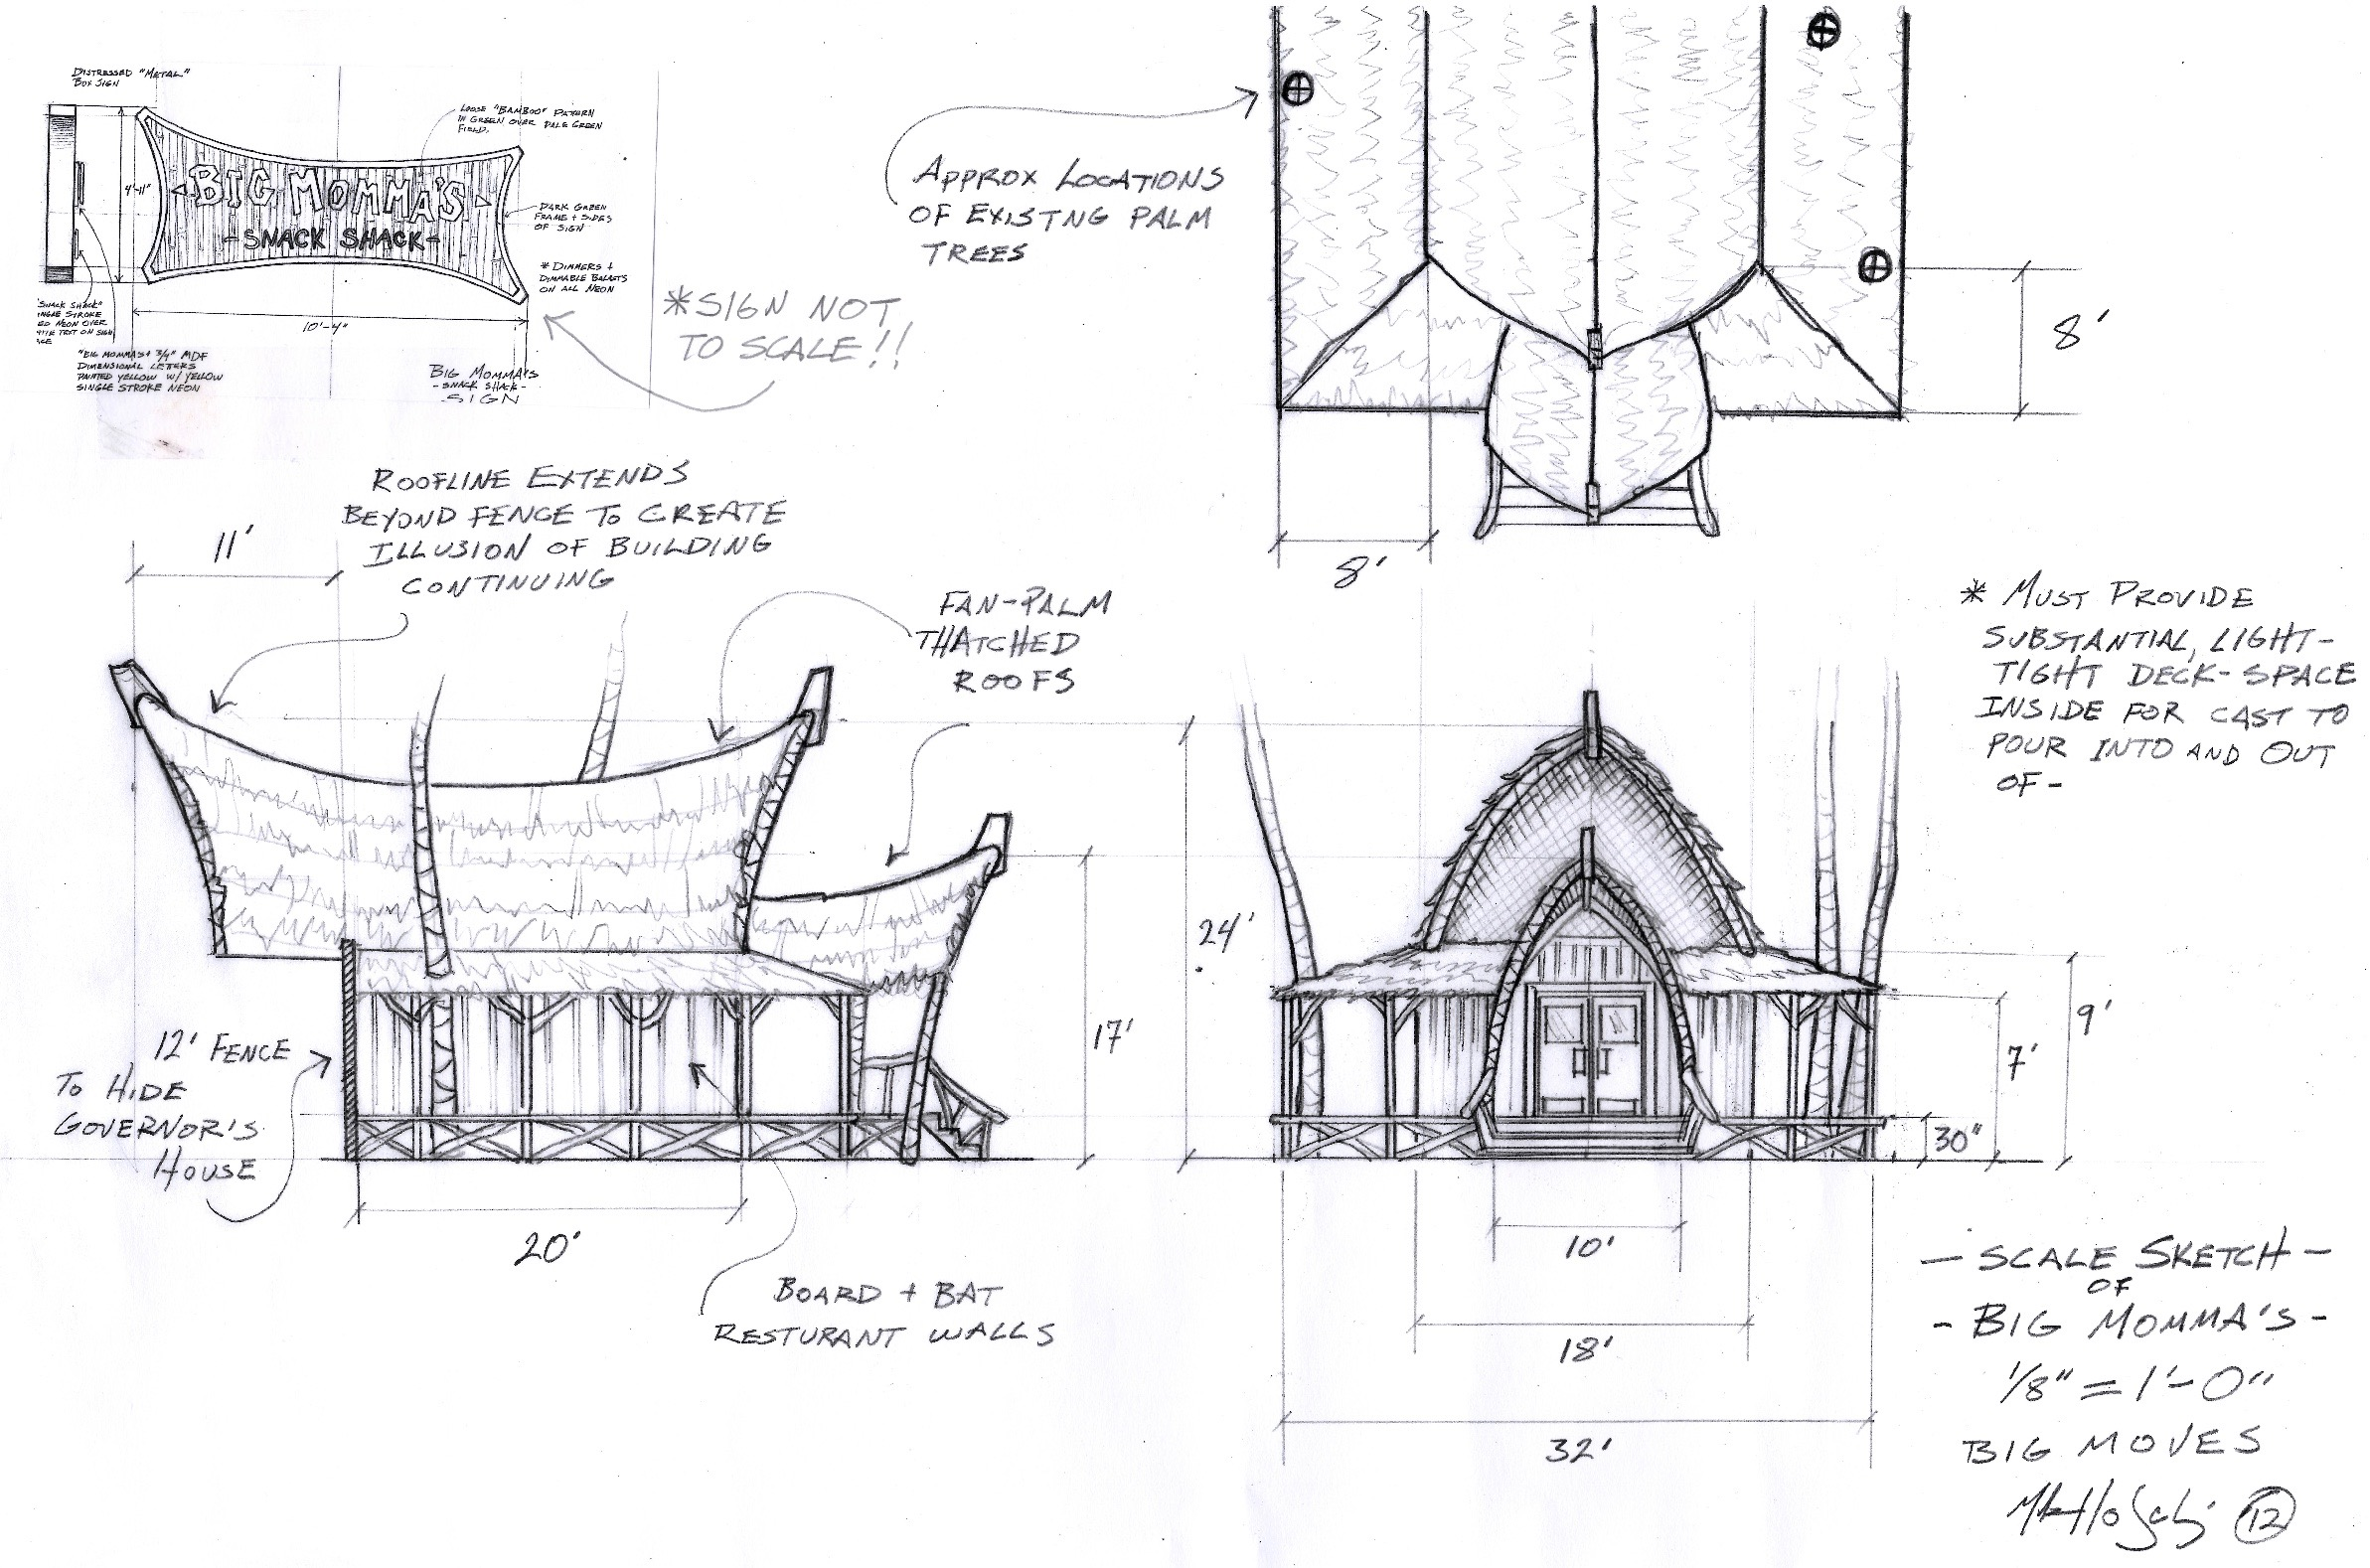 In Teen Beach Movie, the plot of the film within the film is a turf war between comedic gangs of bikers and surfers for control of Big Momma's snack shack. Here was my first sketch/draft of the Polynesian inspired restaurant.